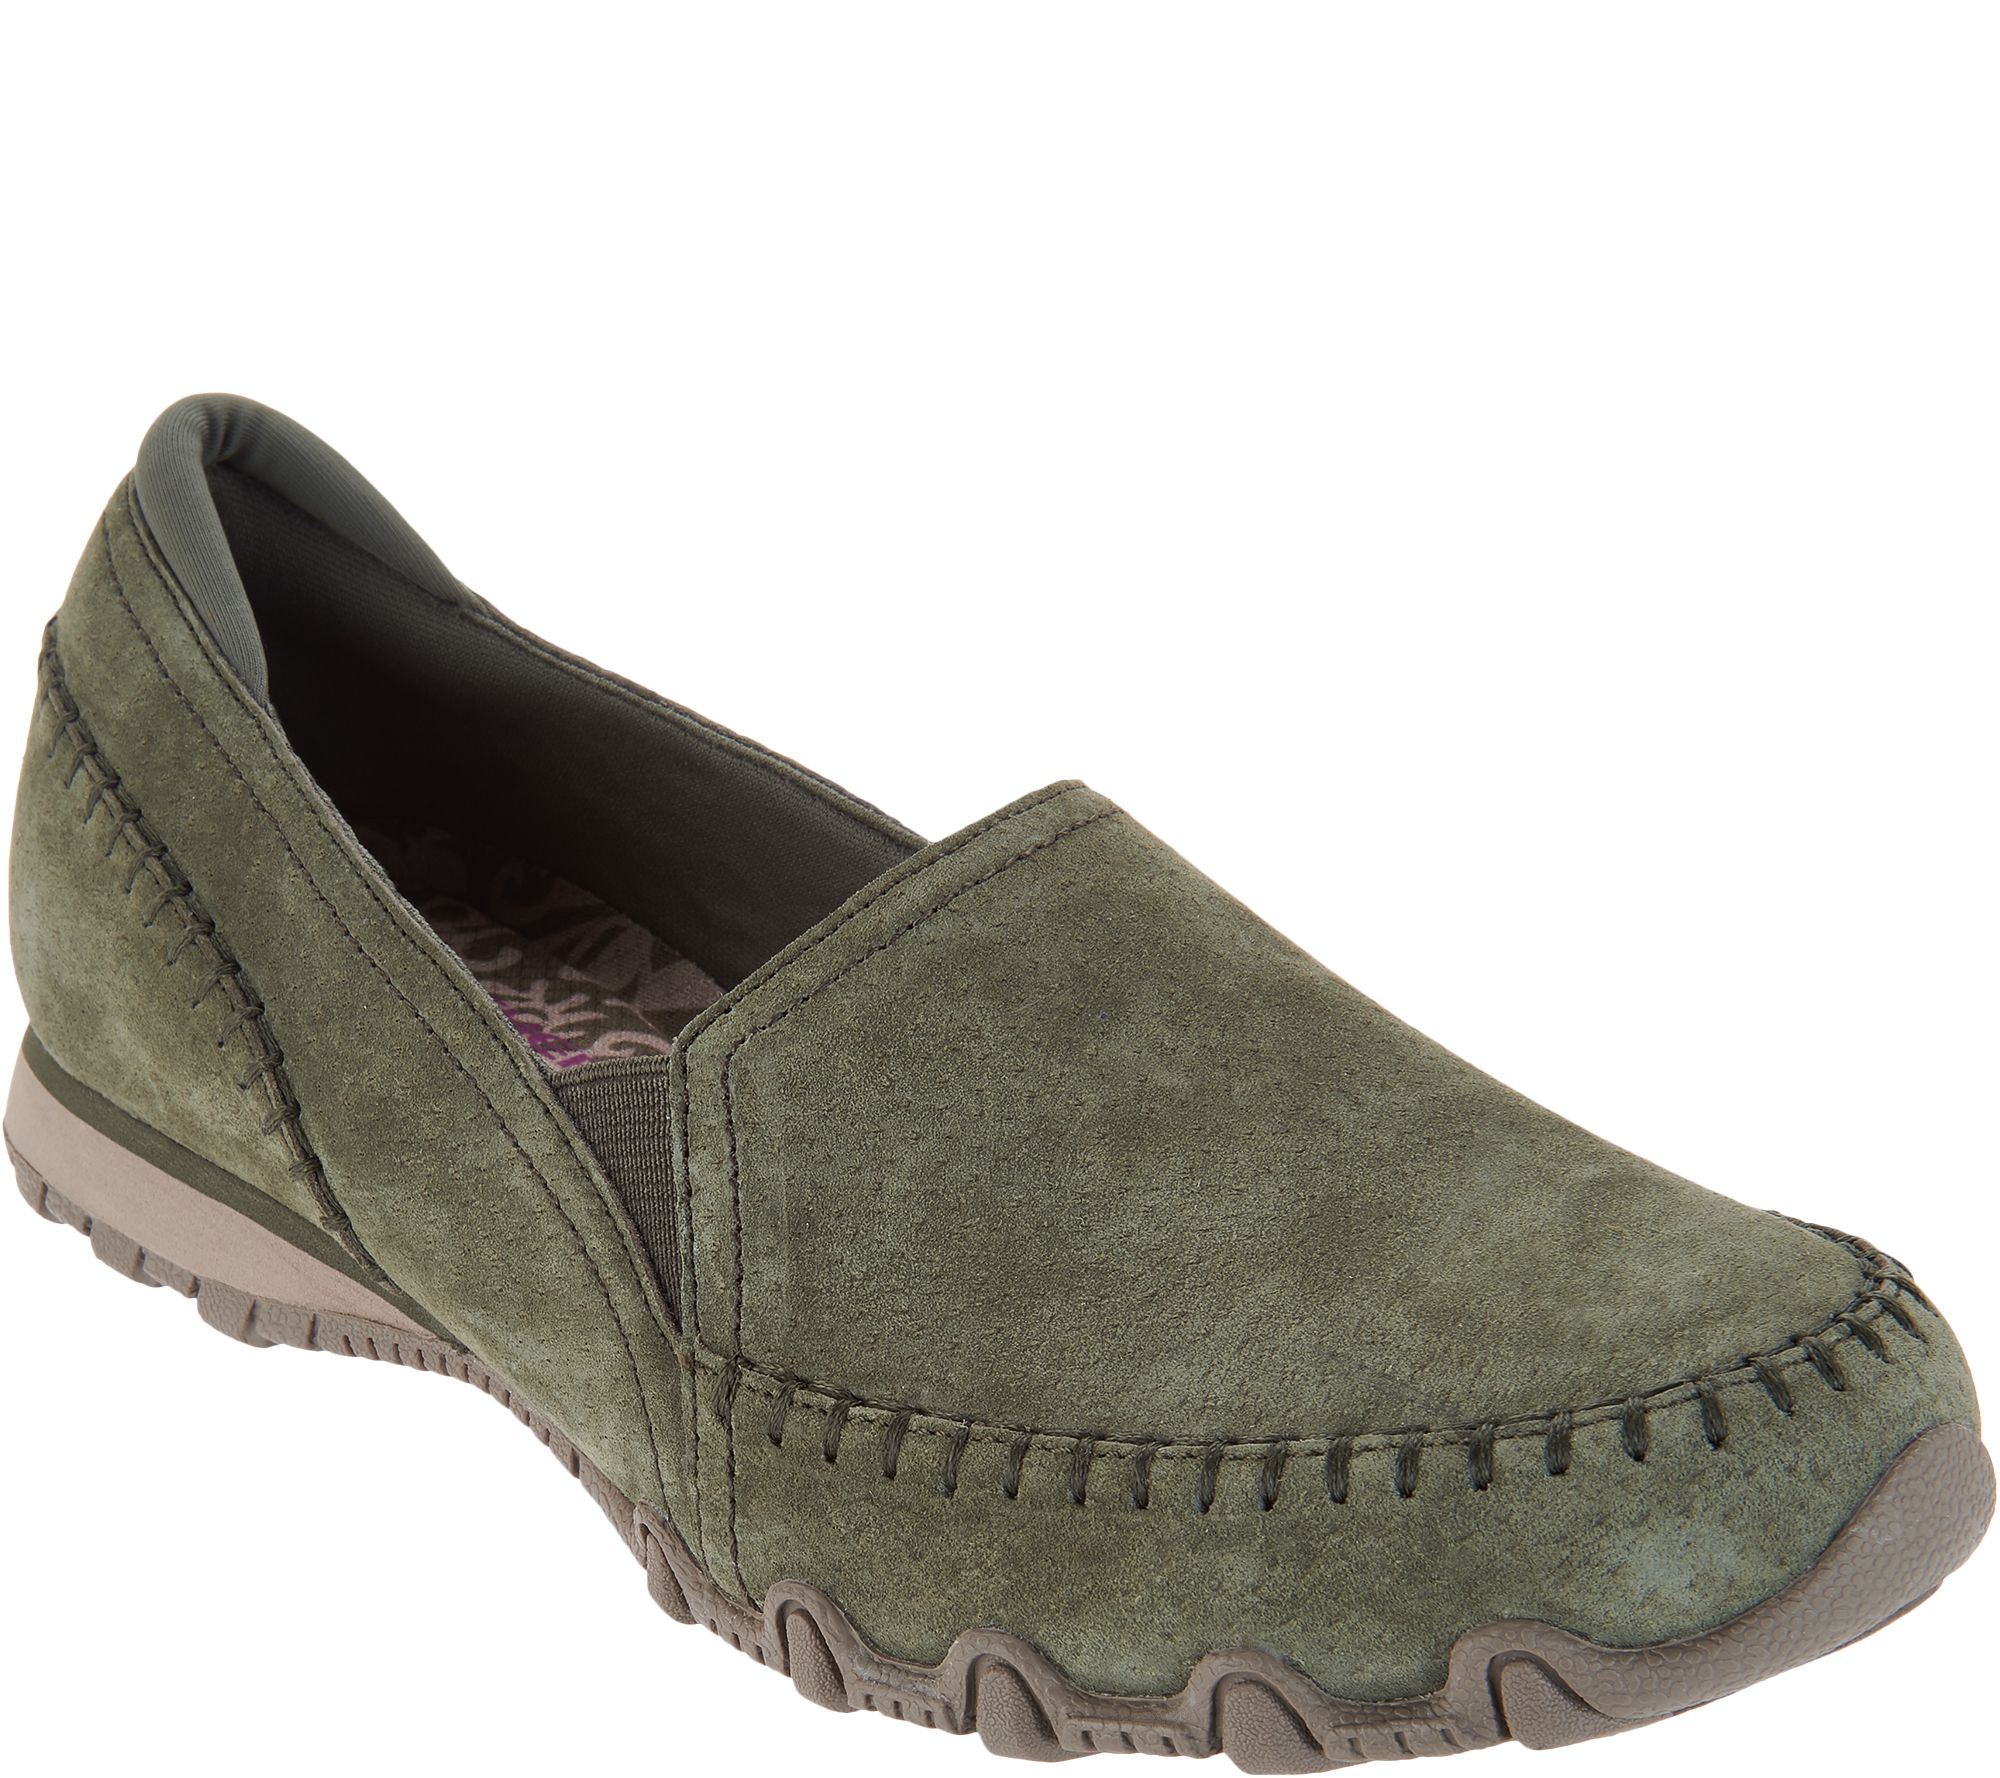 9bc9ef774 Skechers Relaxed Fit Suede Slip-On Shoes - Alumni - Page 1 — QVC.com